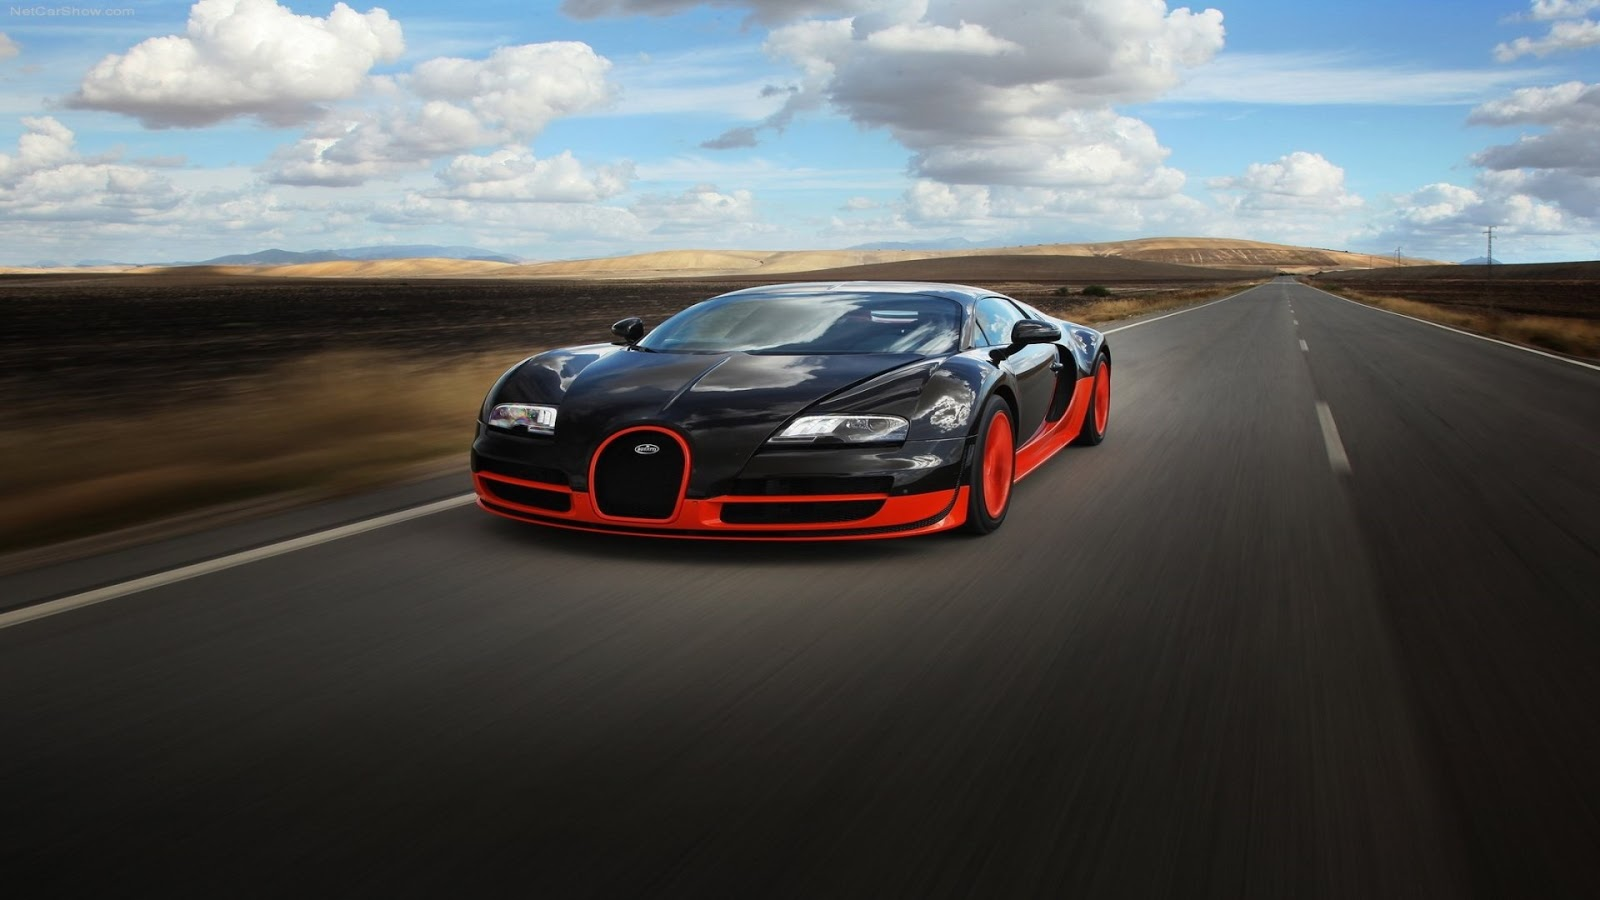 Sport Cars Wallpaper Hd 1080p: Bugatti Veyron Sports Cars HD Wallpapers Download 1080p